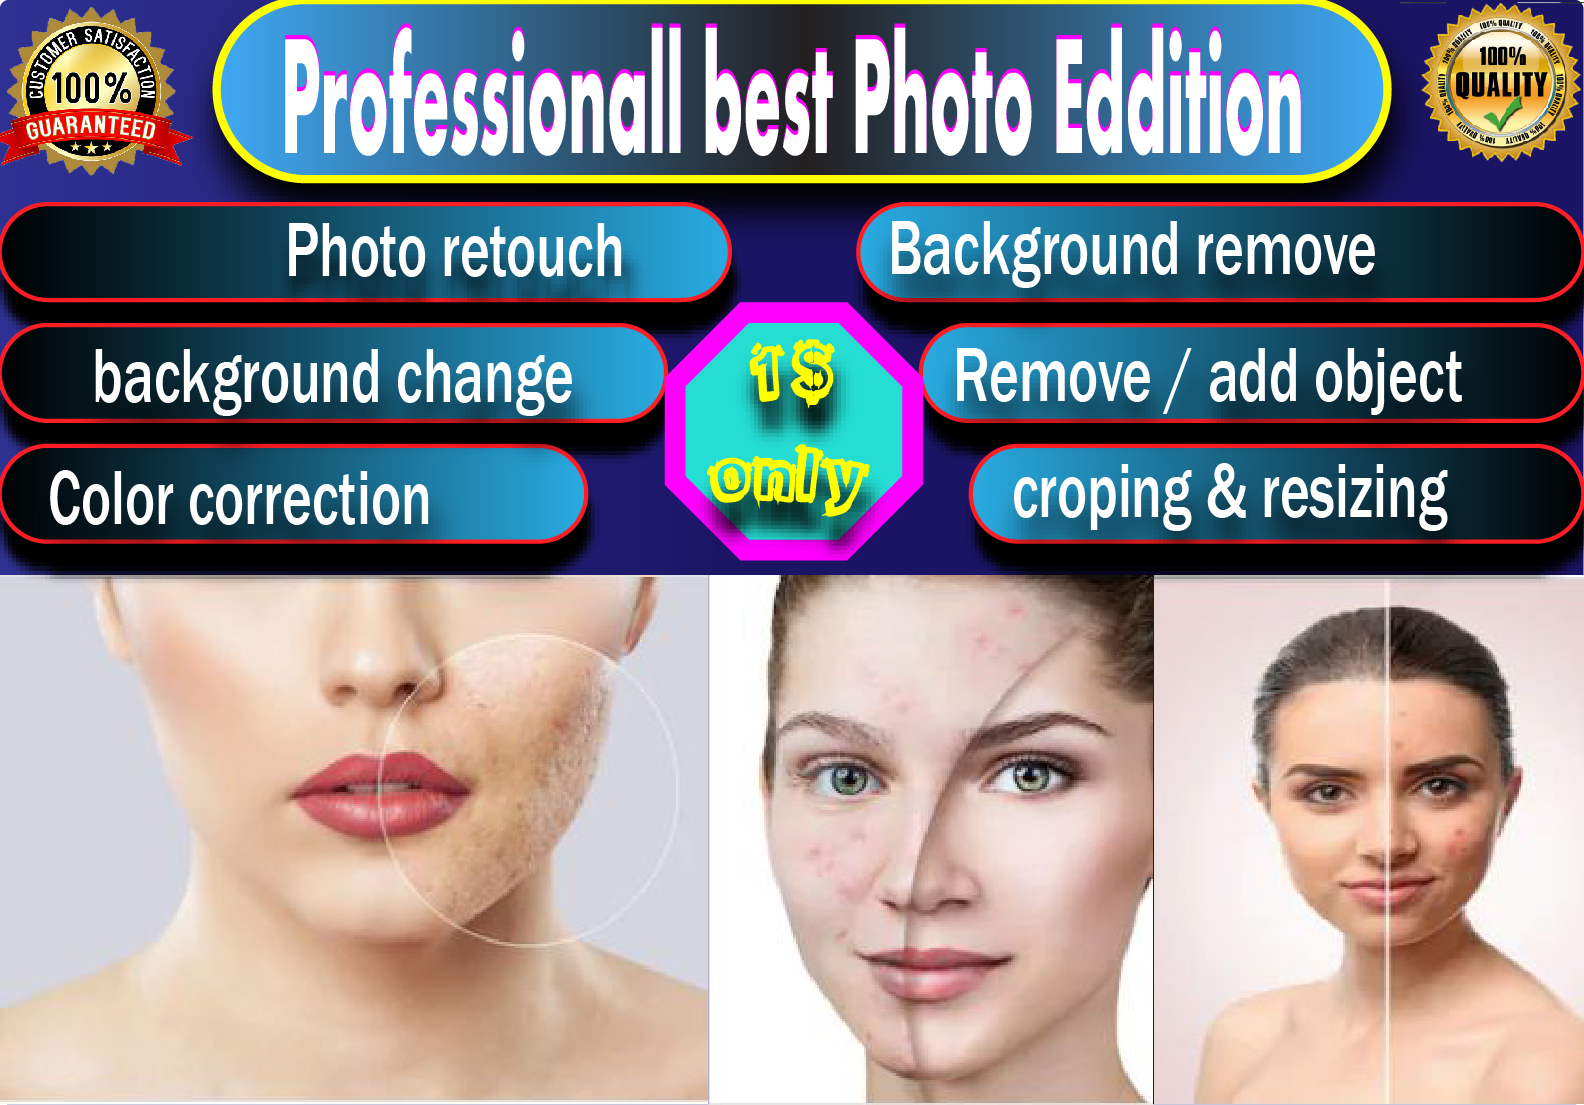 I will do 5 Photo retouching and Professionally photo edit within 12 hours